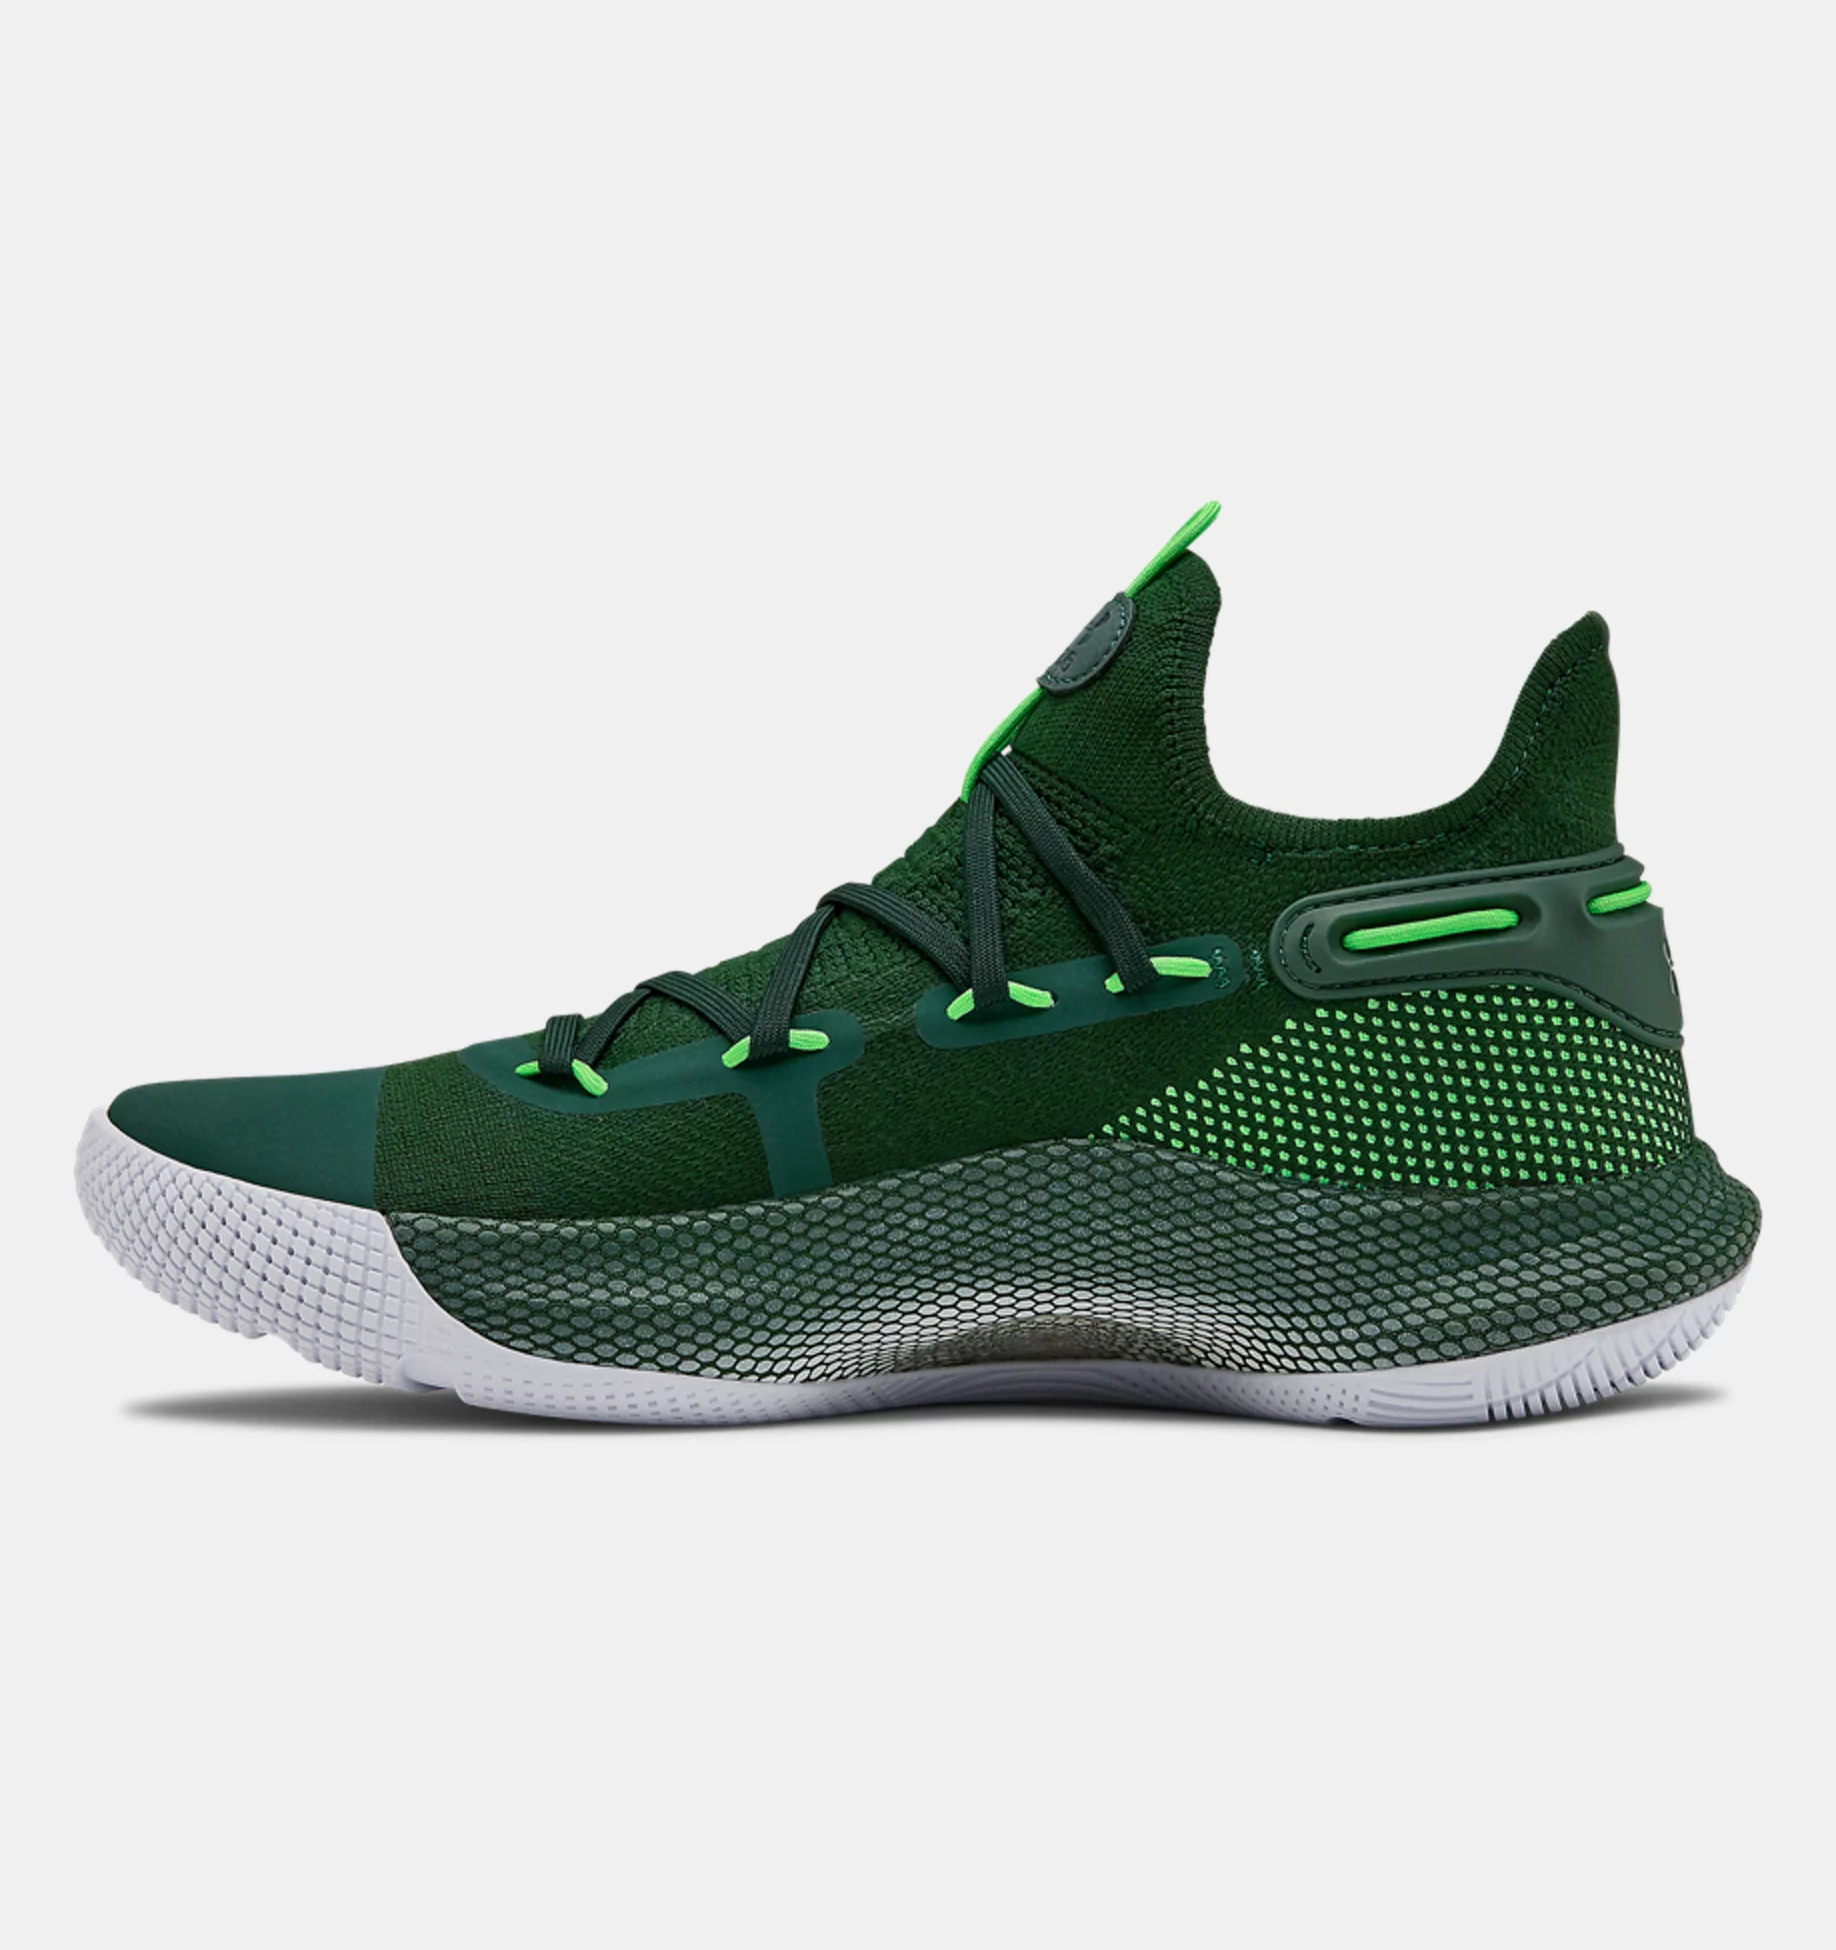 Lightest Basketball Shoes: Curry 6